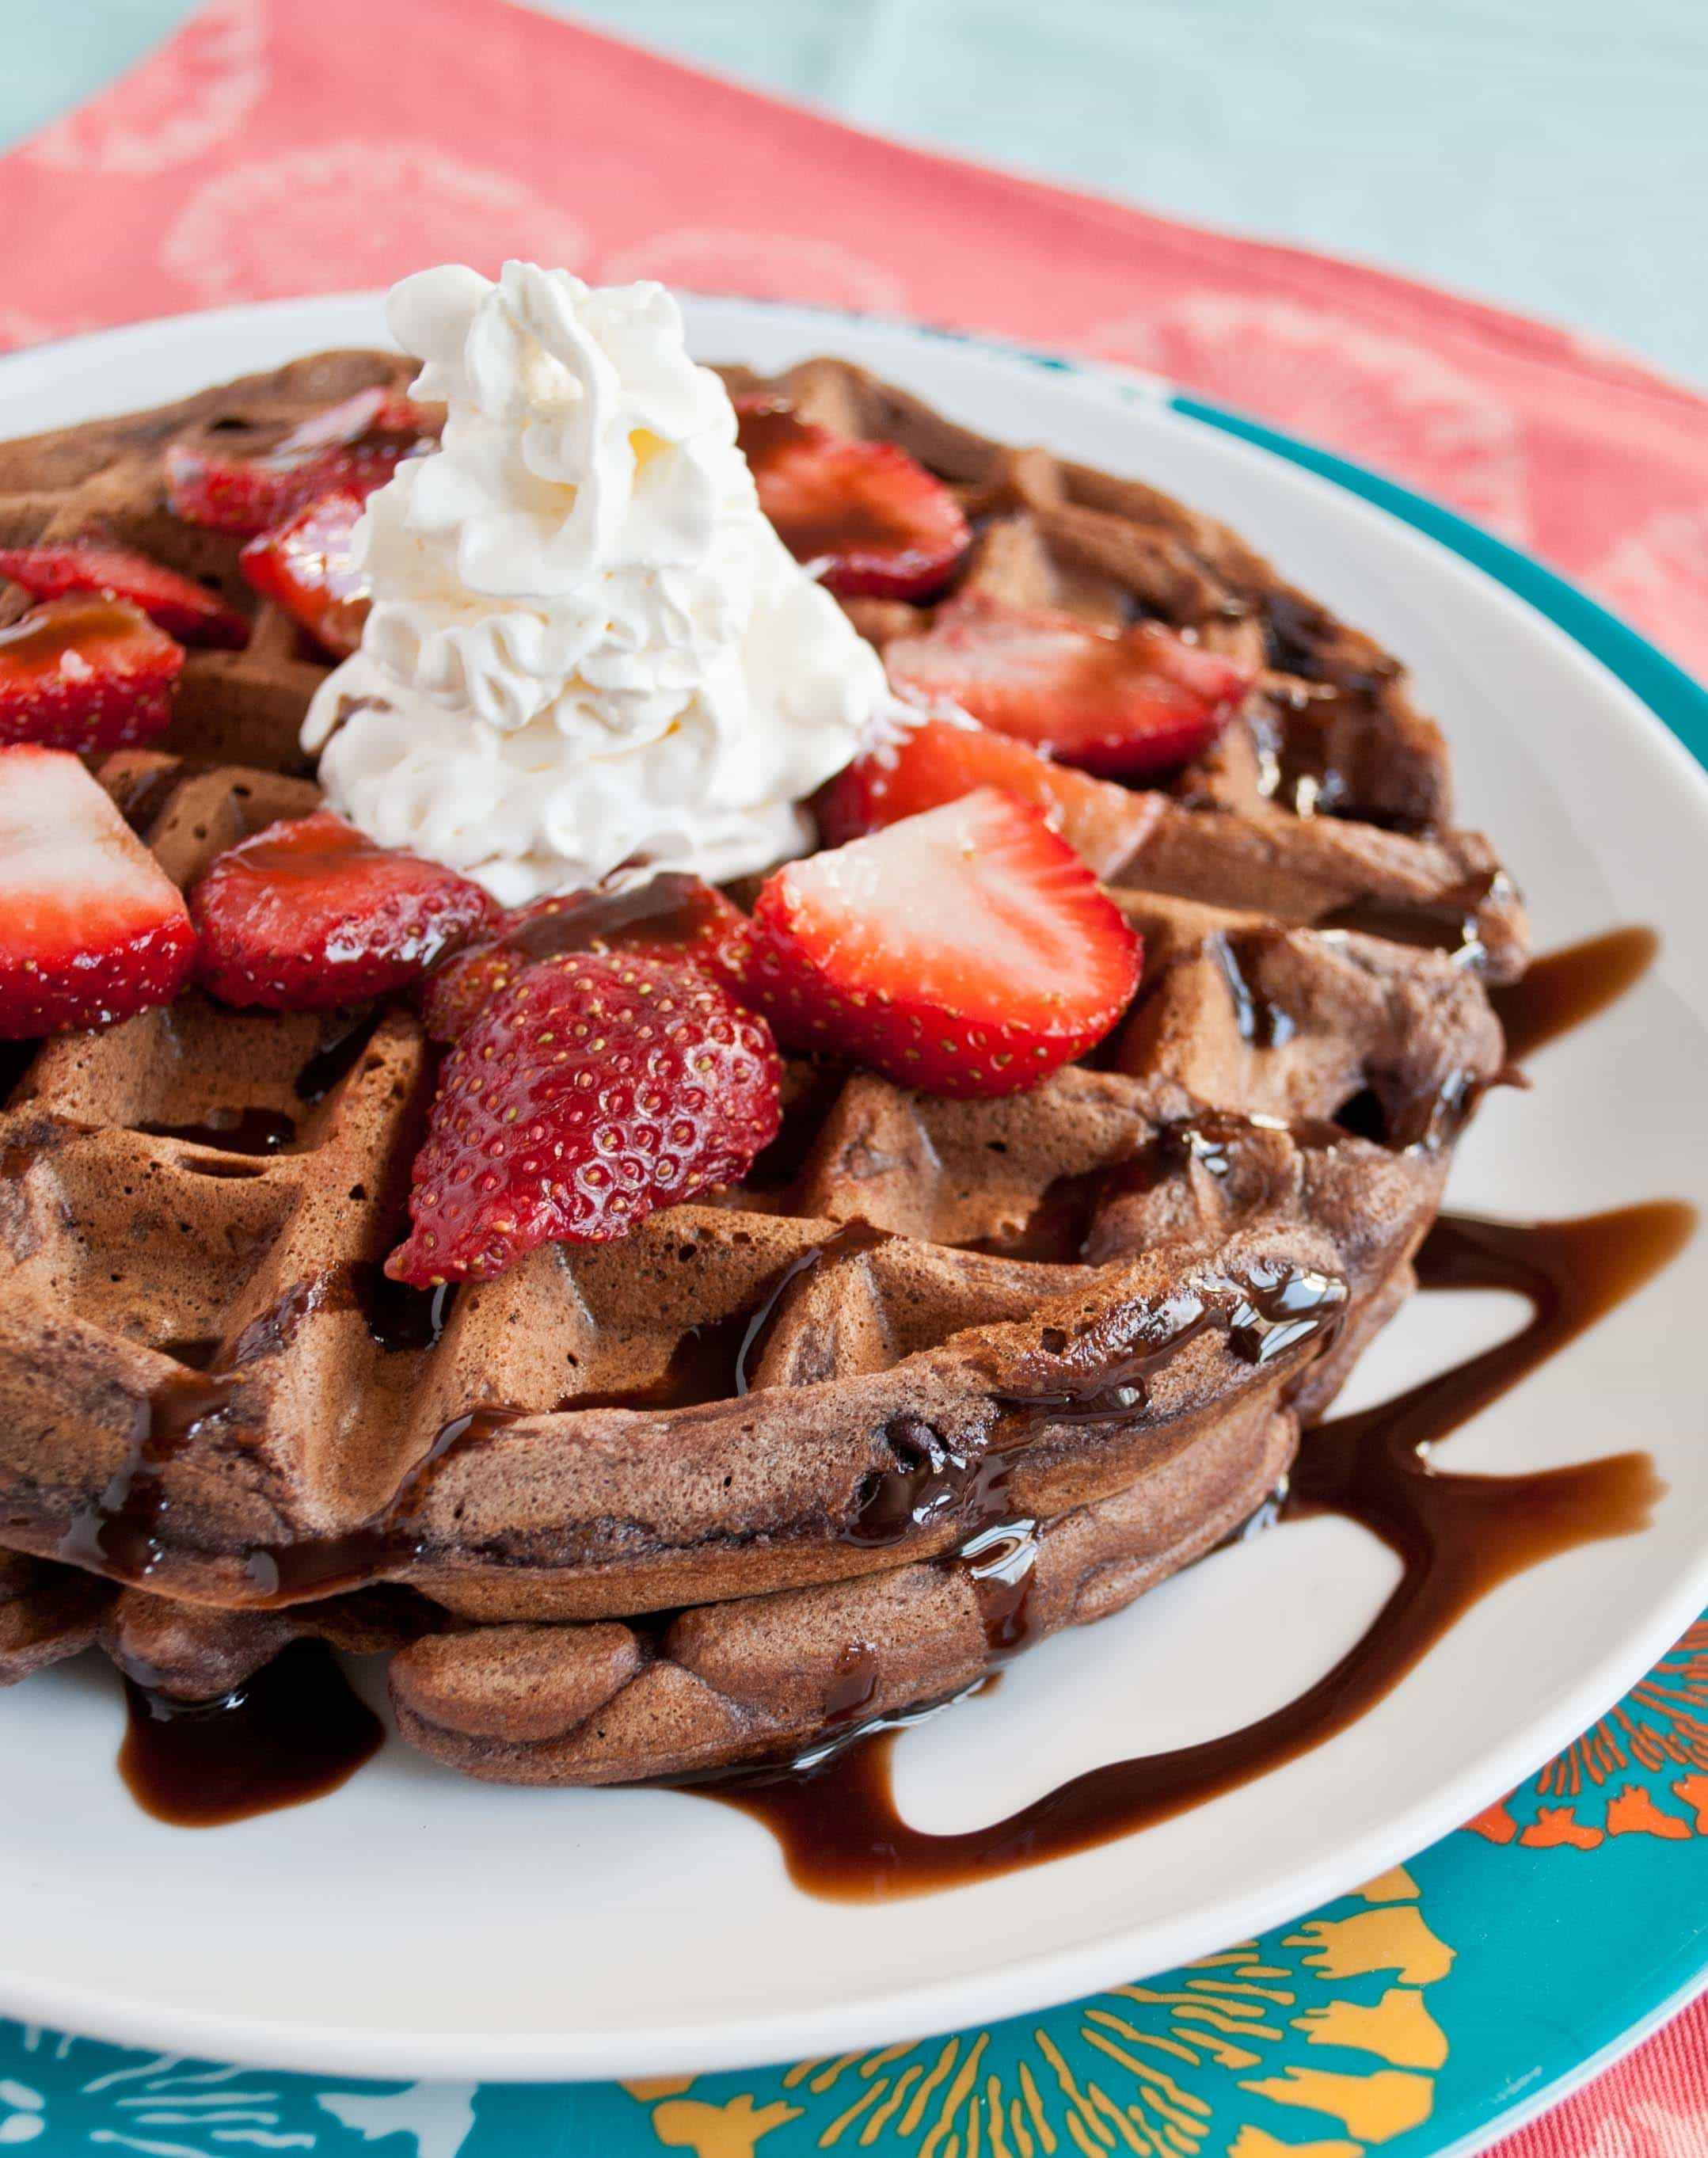 Double Chocolate Waffles with Strawberries and Whipped Cream